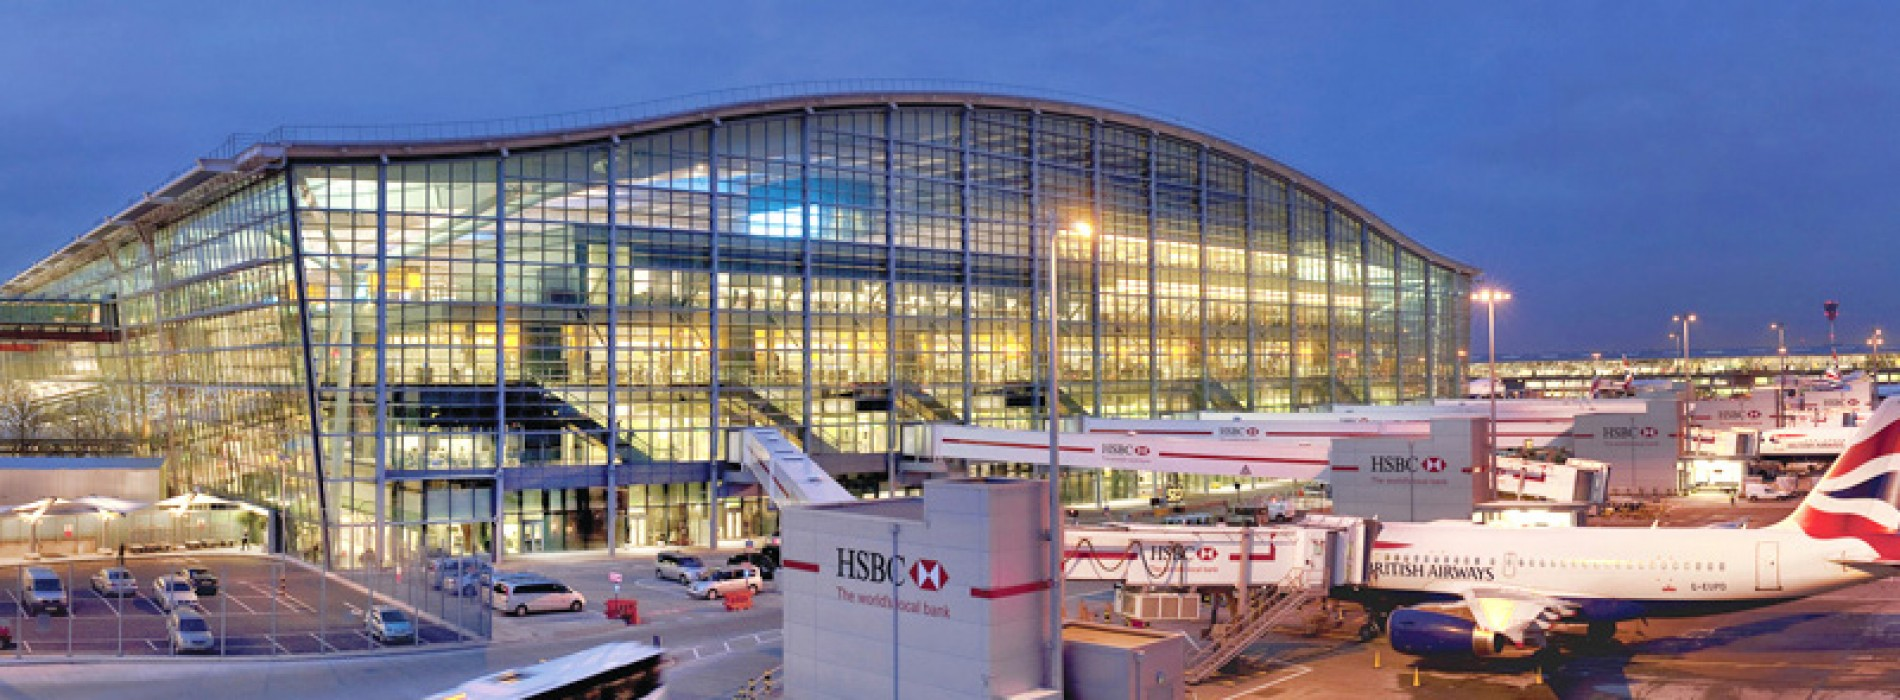 British Airways launches long-haul services from Heathrow Terminal 3